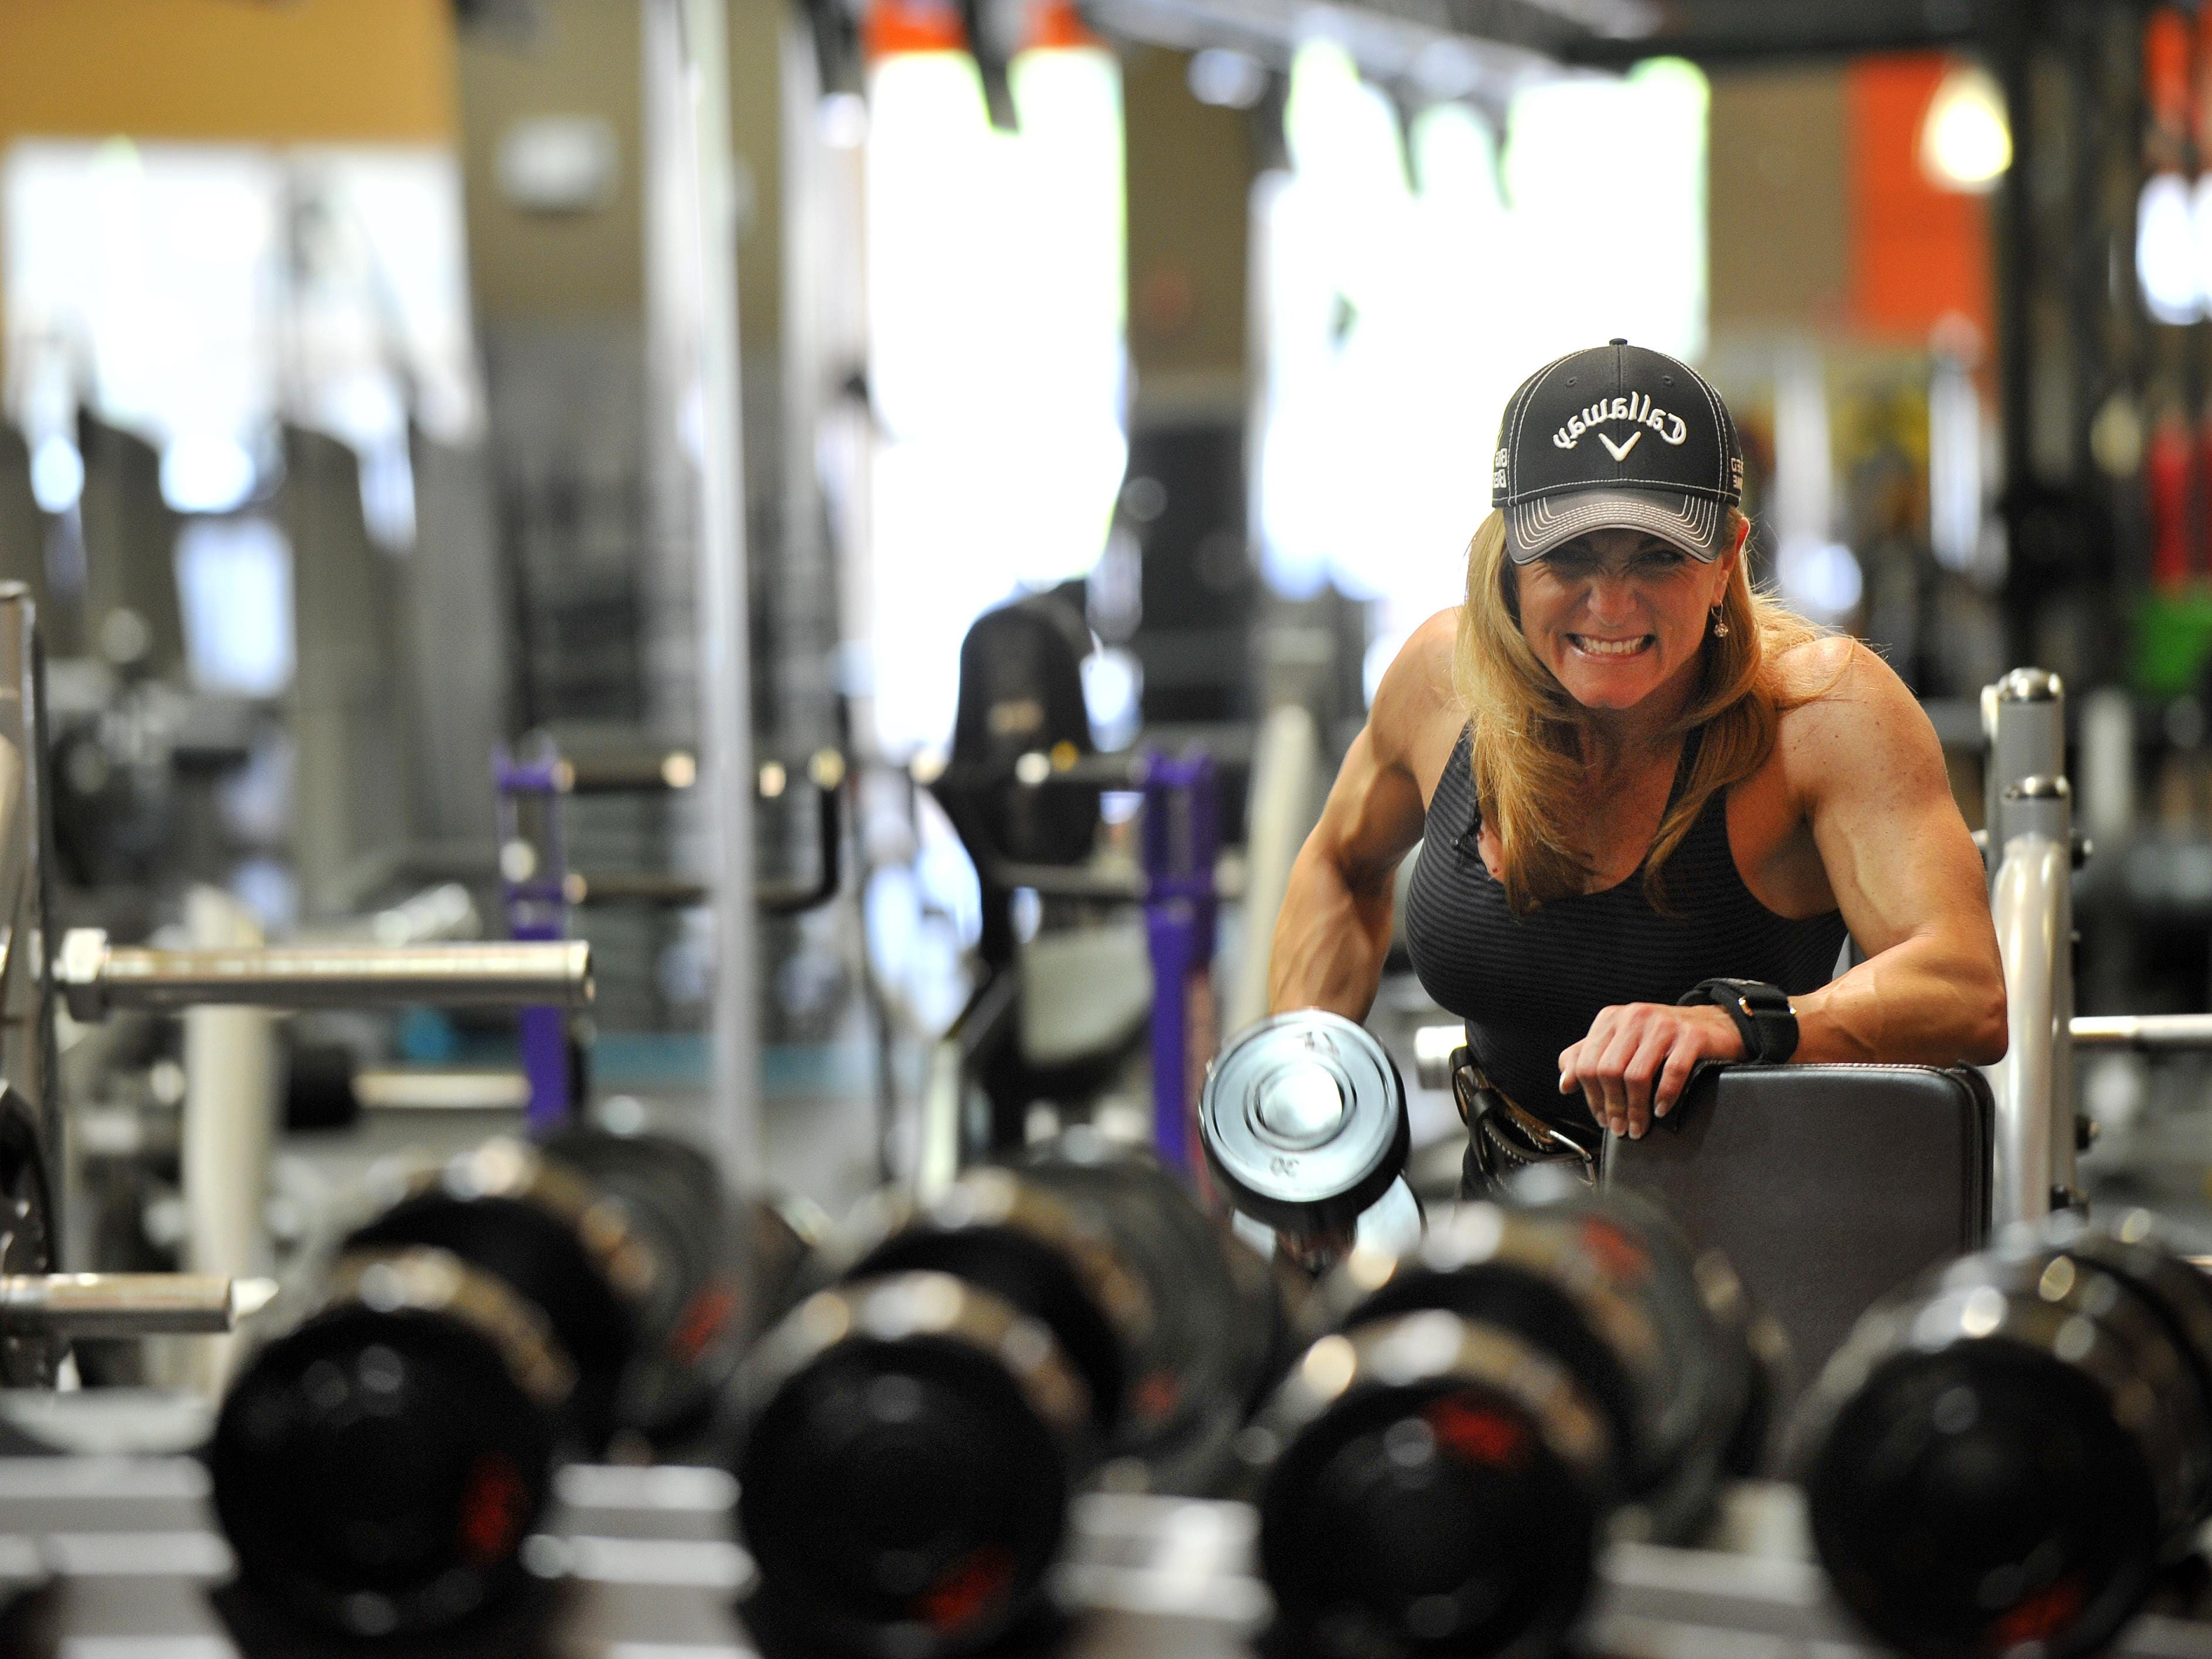 Marie Ann 'Mo' Newman works out her shoulders and back at Golds Gym in Greenville on Friday, May 8, 2015. Newman is 14-weeks out from her first competition.